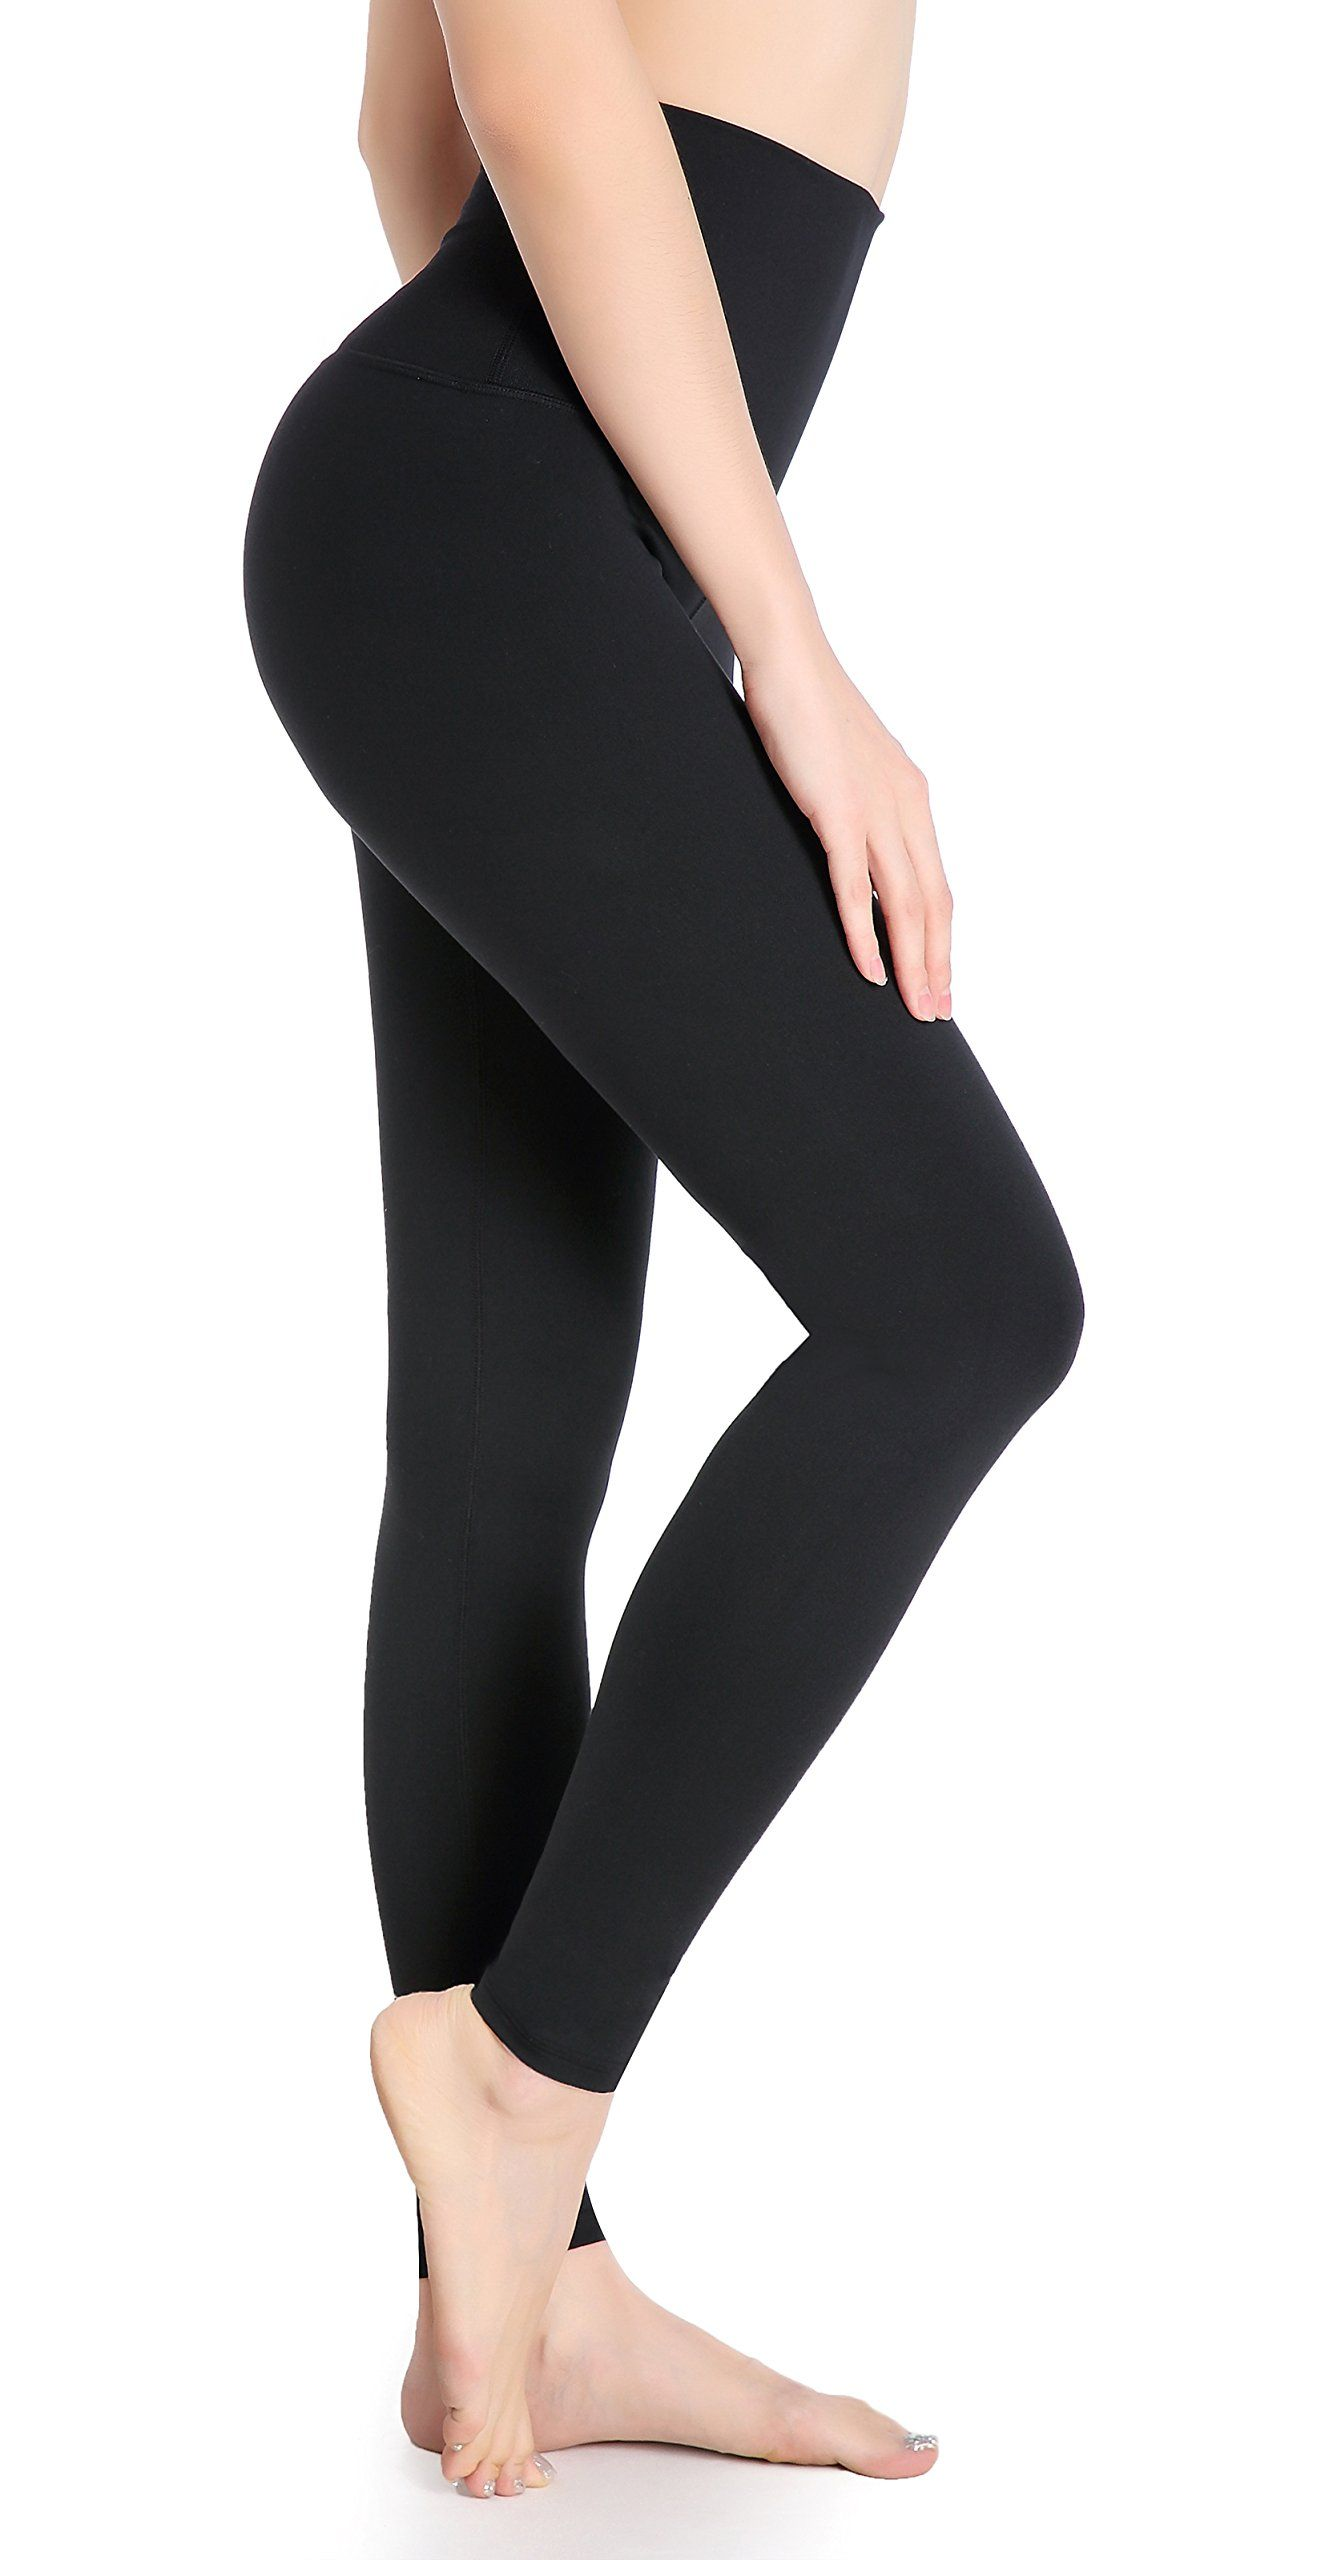 0e5ec5d1af8fa DeepTwist Womens Yoga Pants High Waisted Leggings Active Workout Tights  with Tummy Control Black